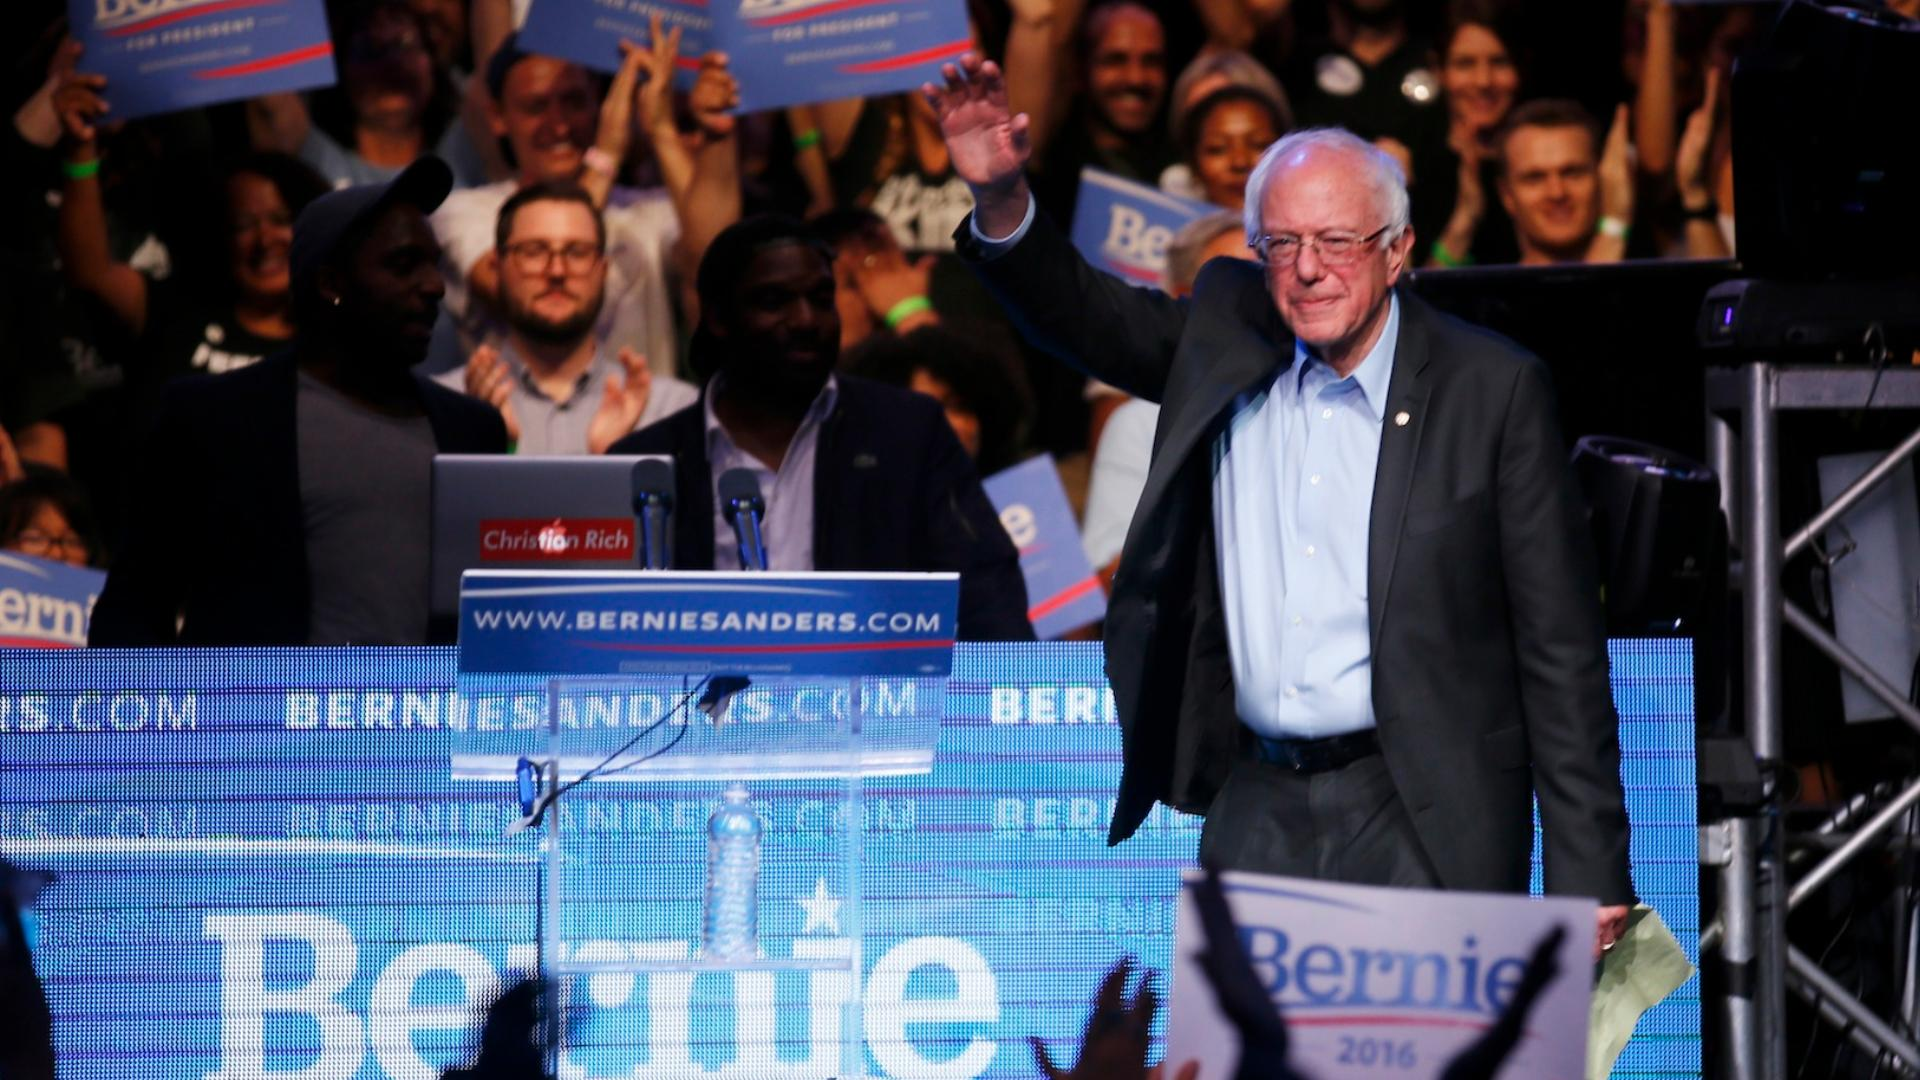 Young voters are failing Bernie Sanders, just as they've failed so many before